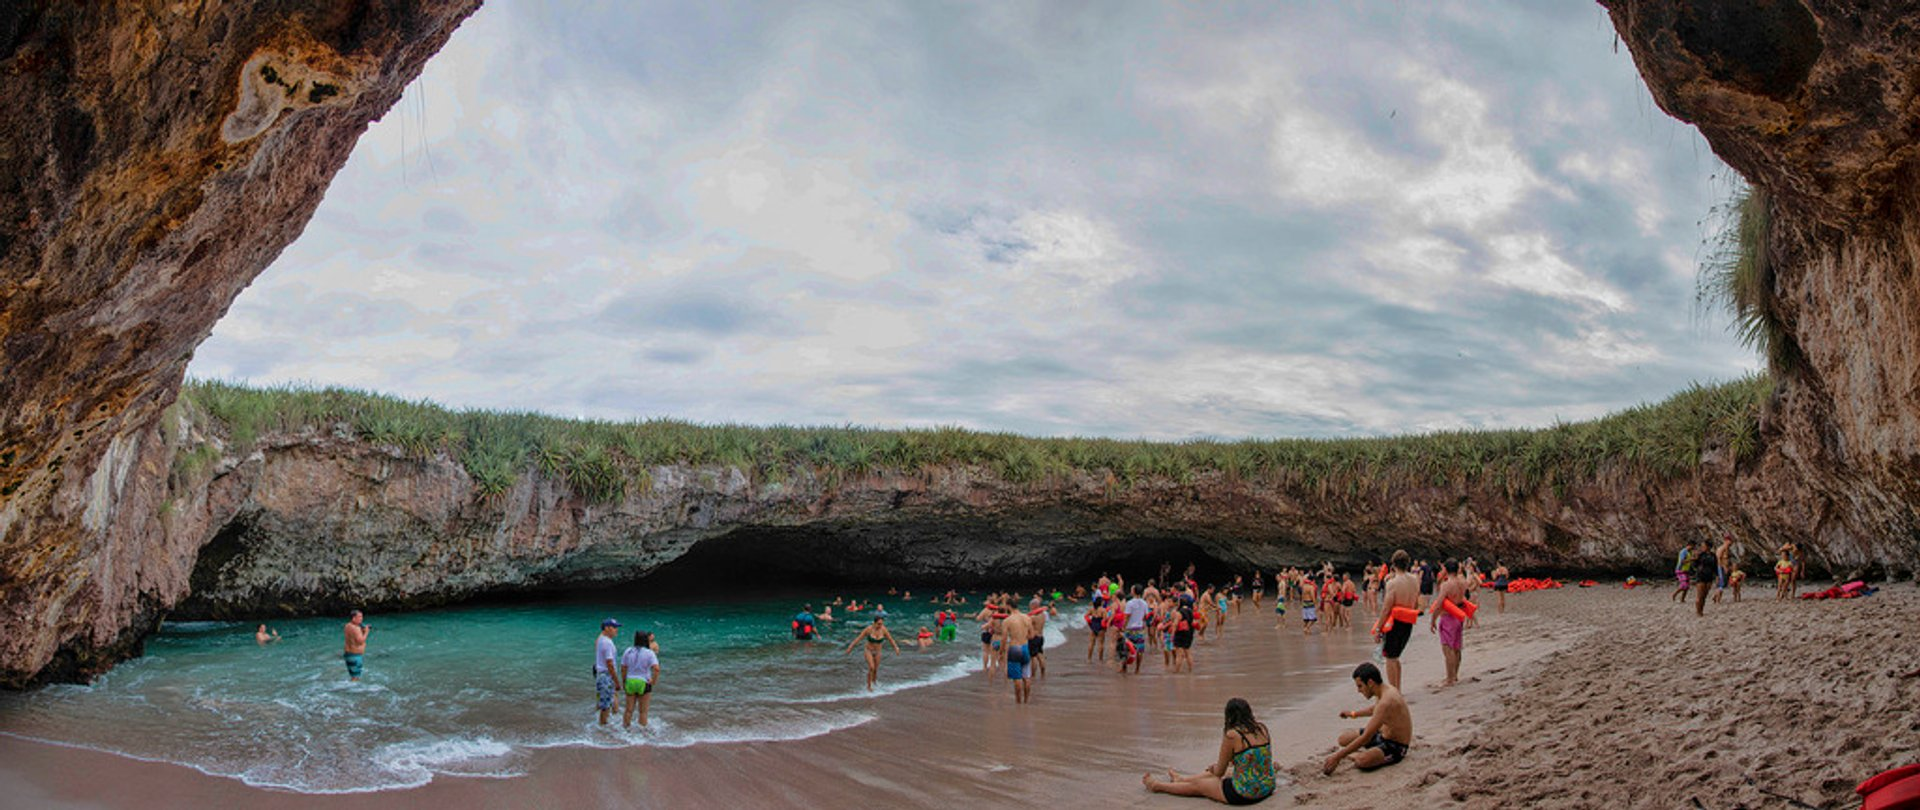 Best time to see The Hidden Beach (Playa Del Amor) in Mexico 2019